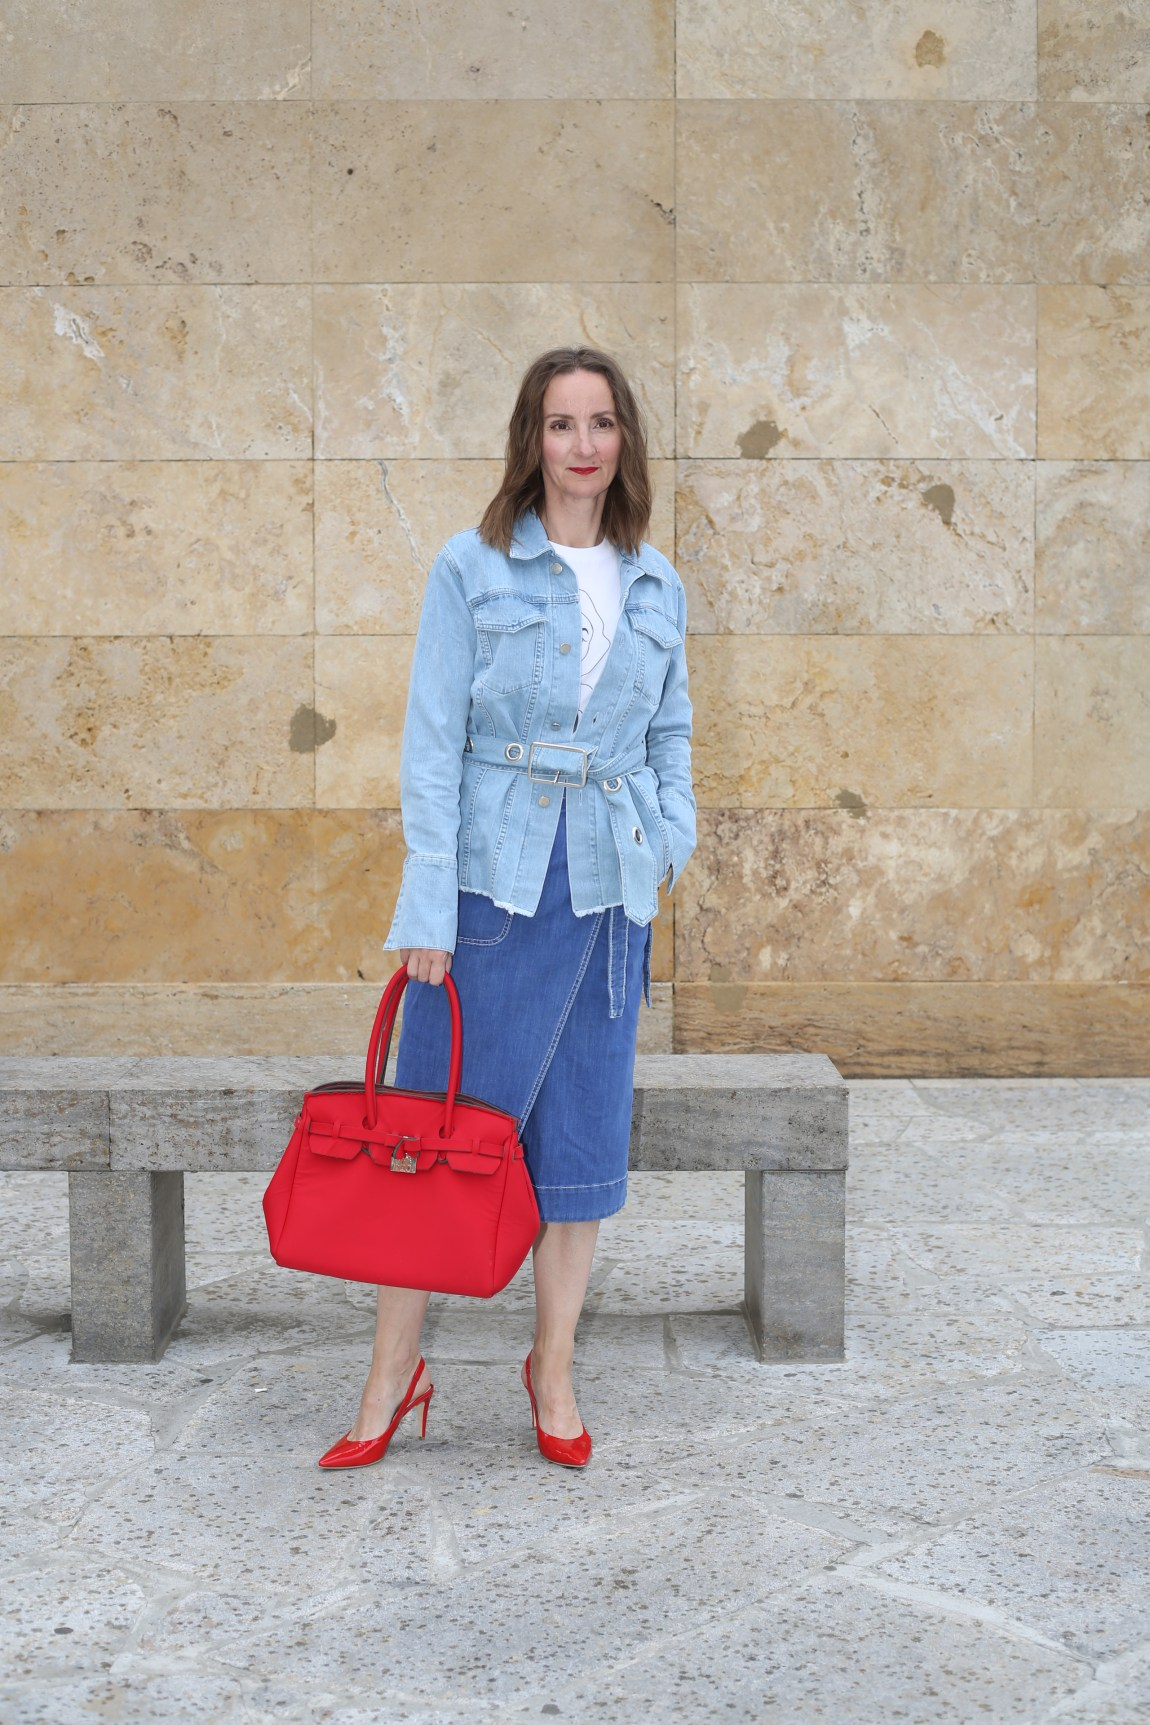 weite-hose_streifen_faltenrock_streifenbluse_slingback-pumps_rot_mode-blog-ü40_Oceanblue-style_jeans-jacke_denim_neopren_birkin-bag_wrapped_denim-skirt_wickelrock_jeans